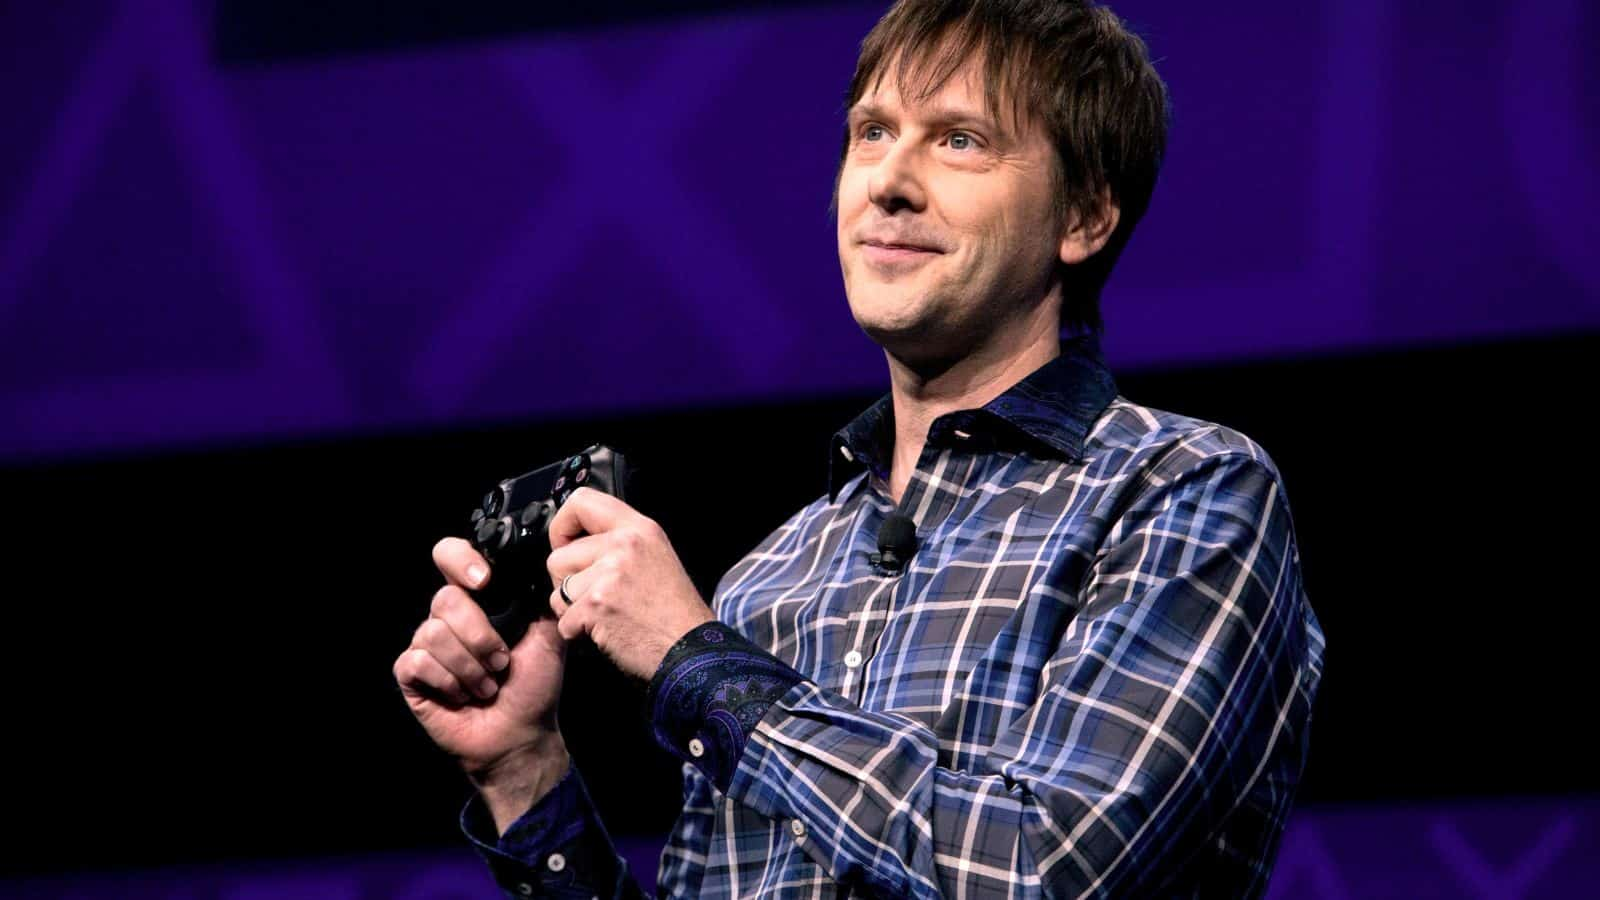 Sony's lead architect Mike Cerny